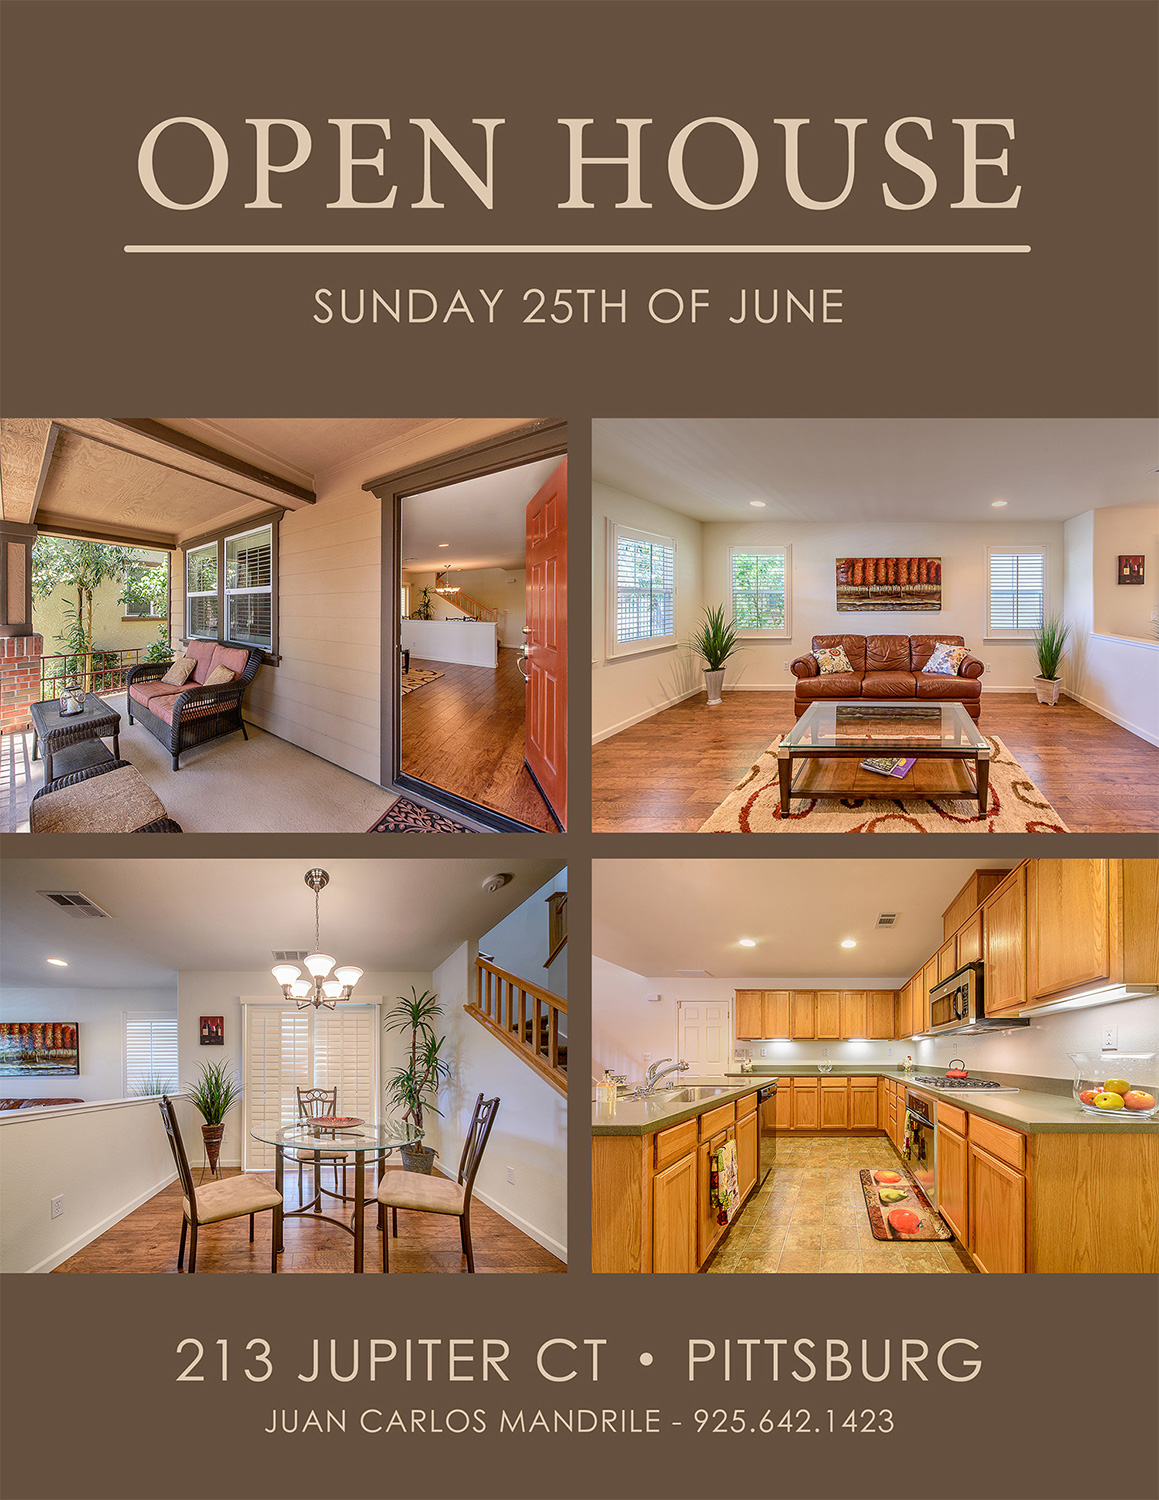 Pittsburd house open house flyer - real estate photography